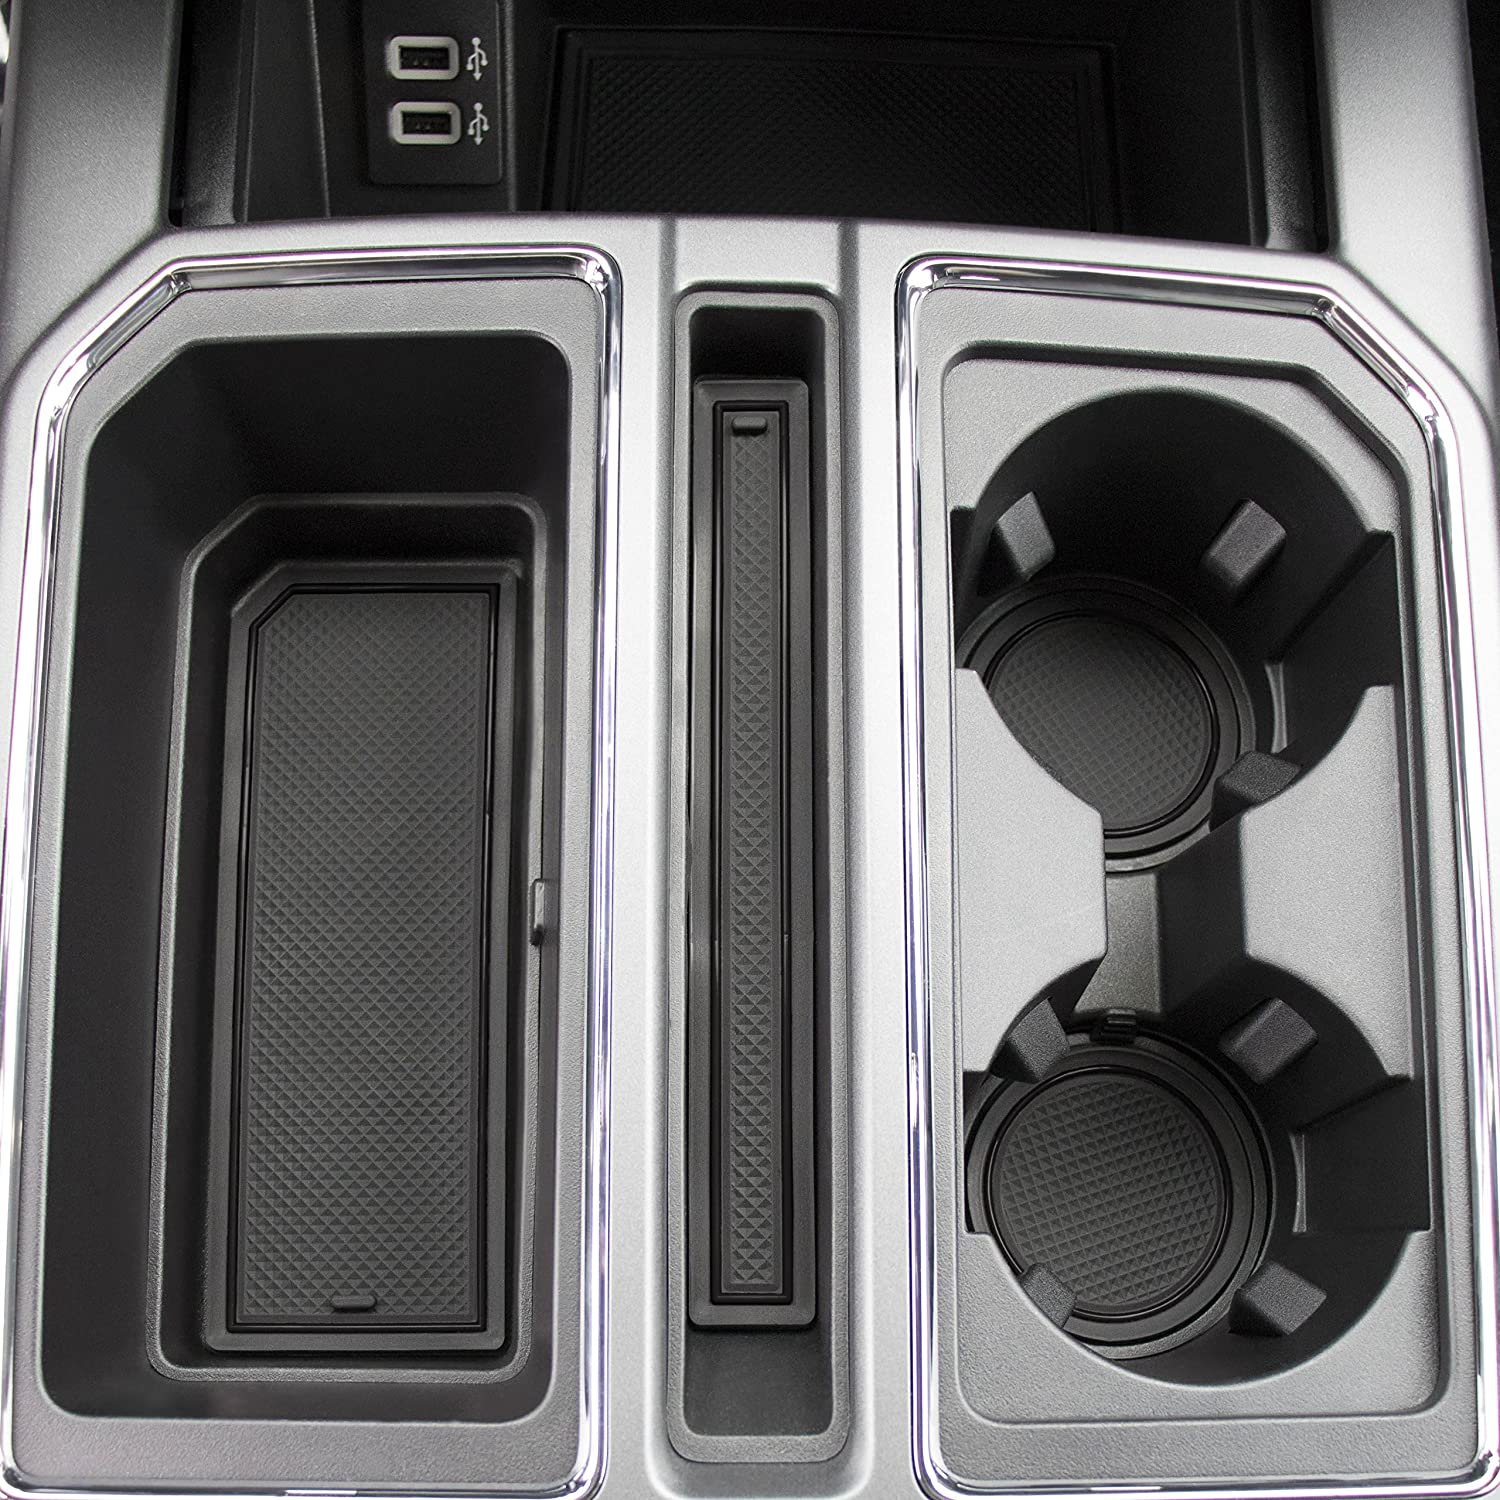 CupHolderHero 4350406904 Solid Black Super Crew 2017 2018 Ford F-150 Custom Fit Cup Holder and Door Liner Accessories F150 28-pc Set